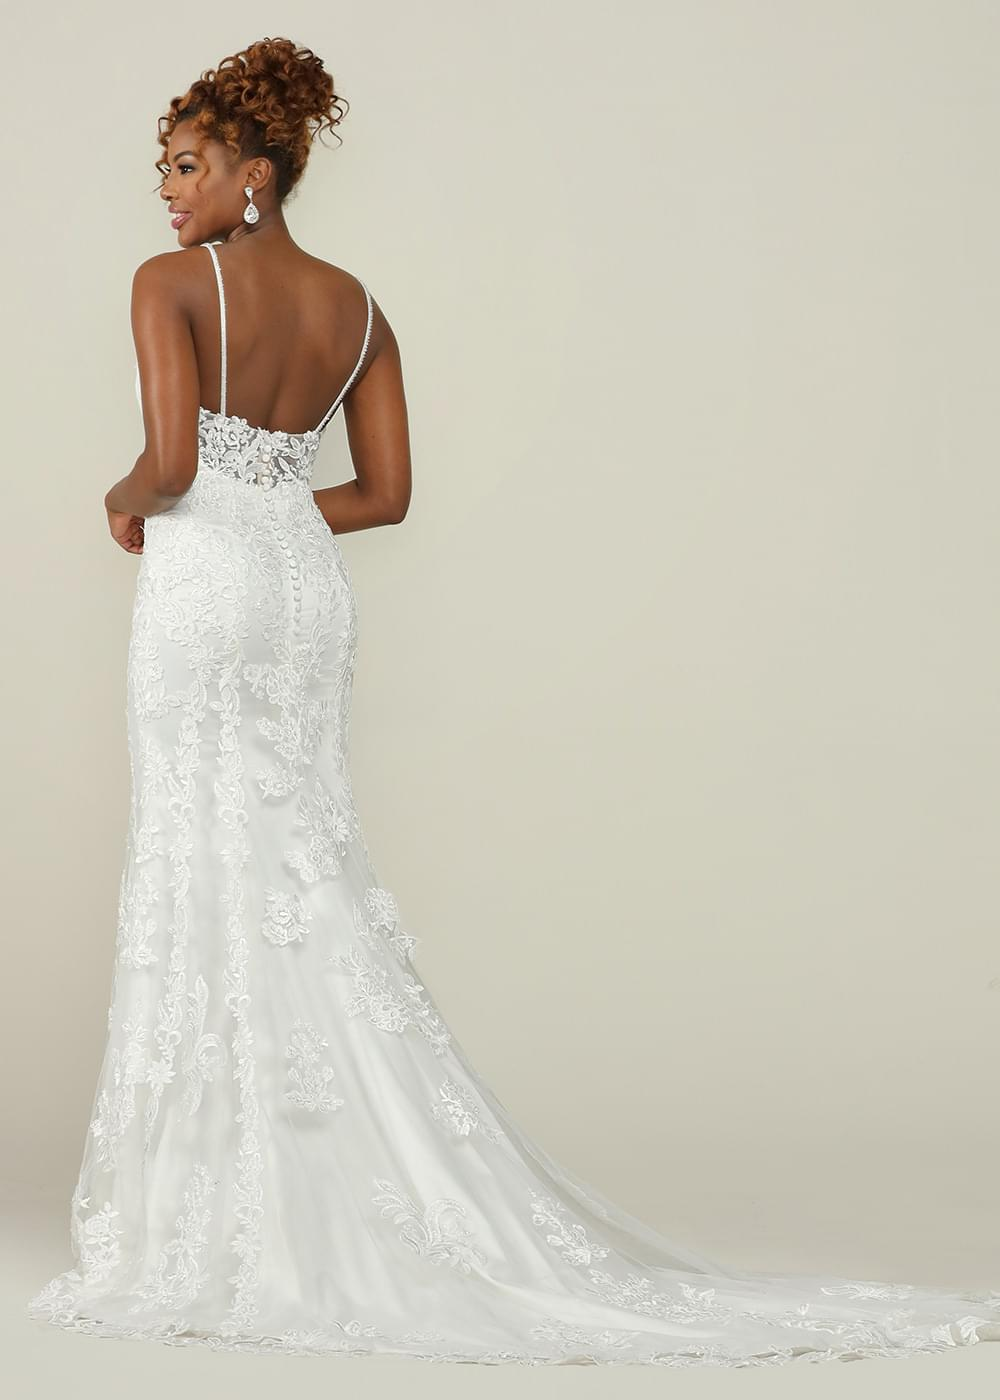 Jocelyn Shop All Wedding Dresses By Ashdon